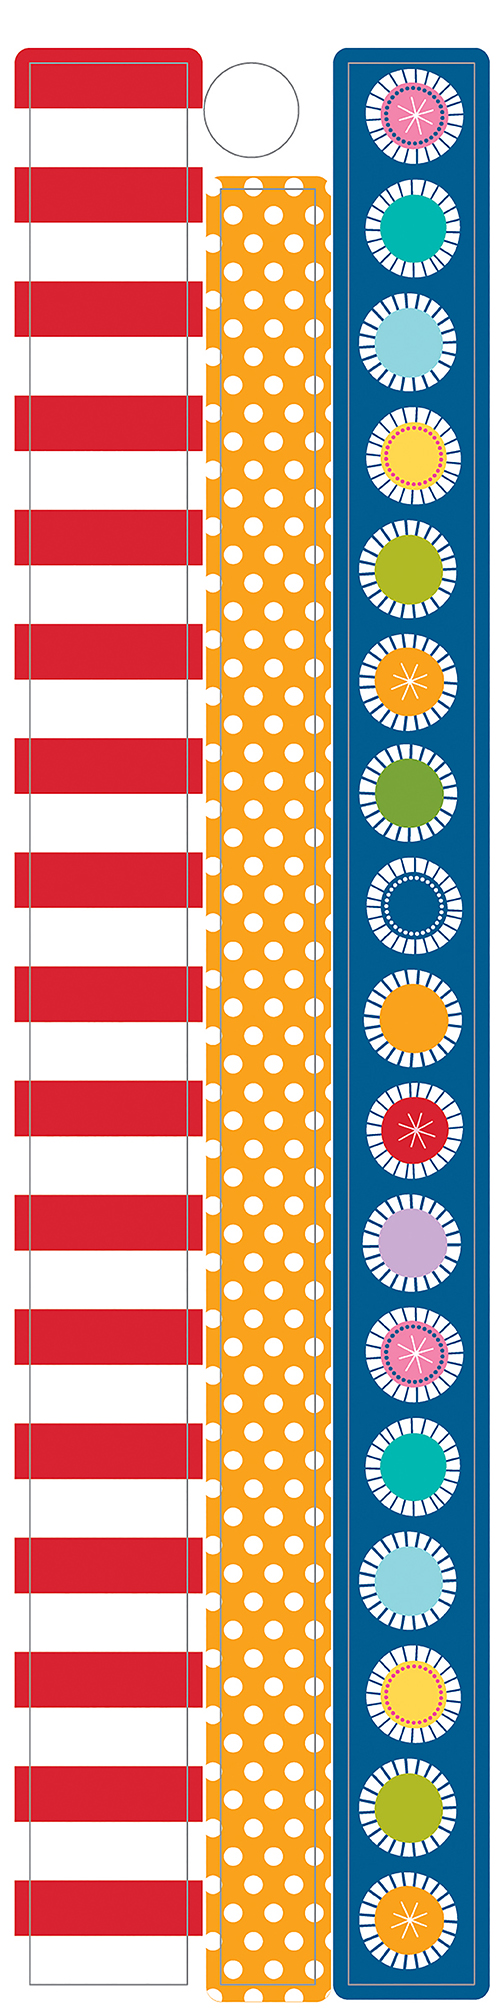 1350_WASHI_STICKERS_COLORFUL-02